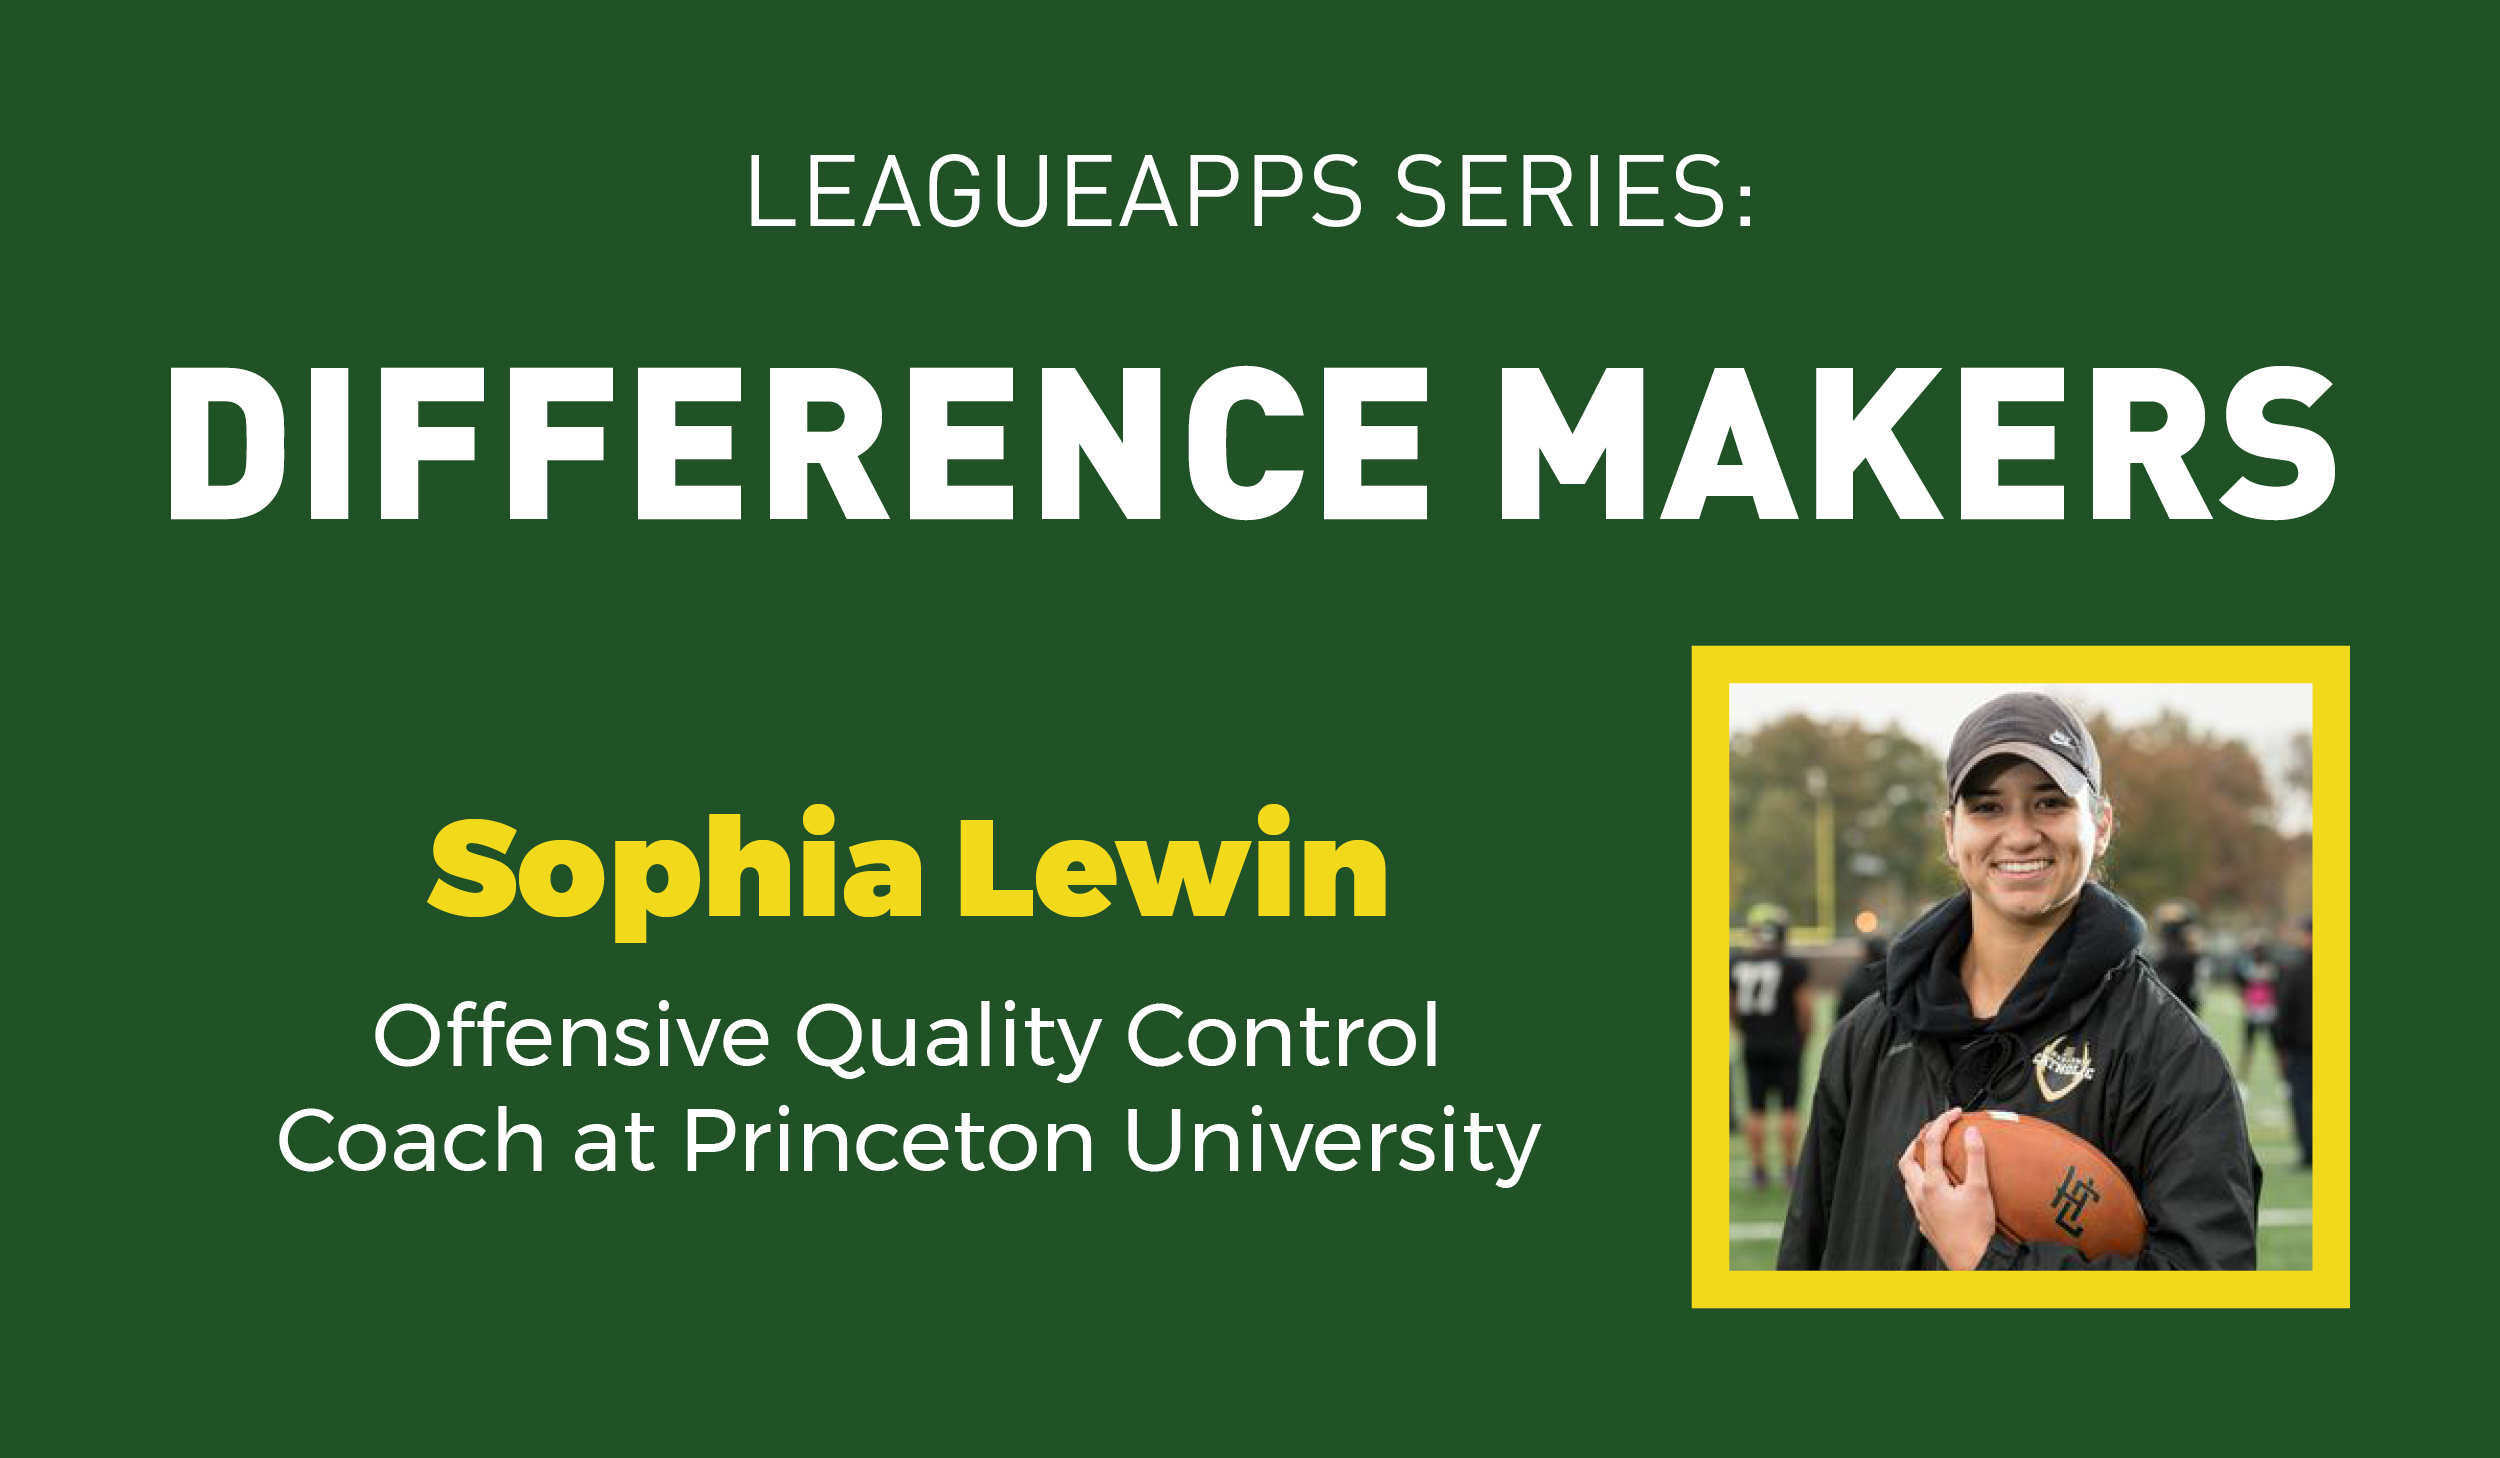 Sophia Lewin Difference Makers